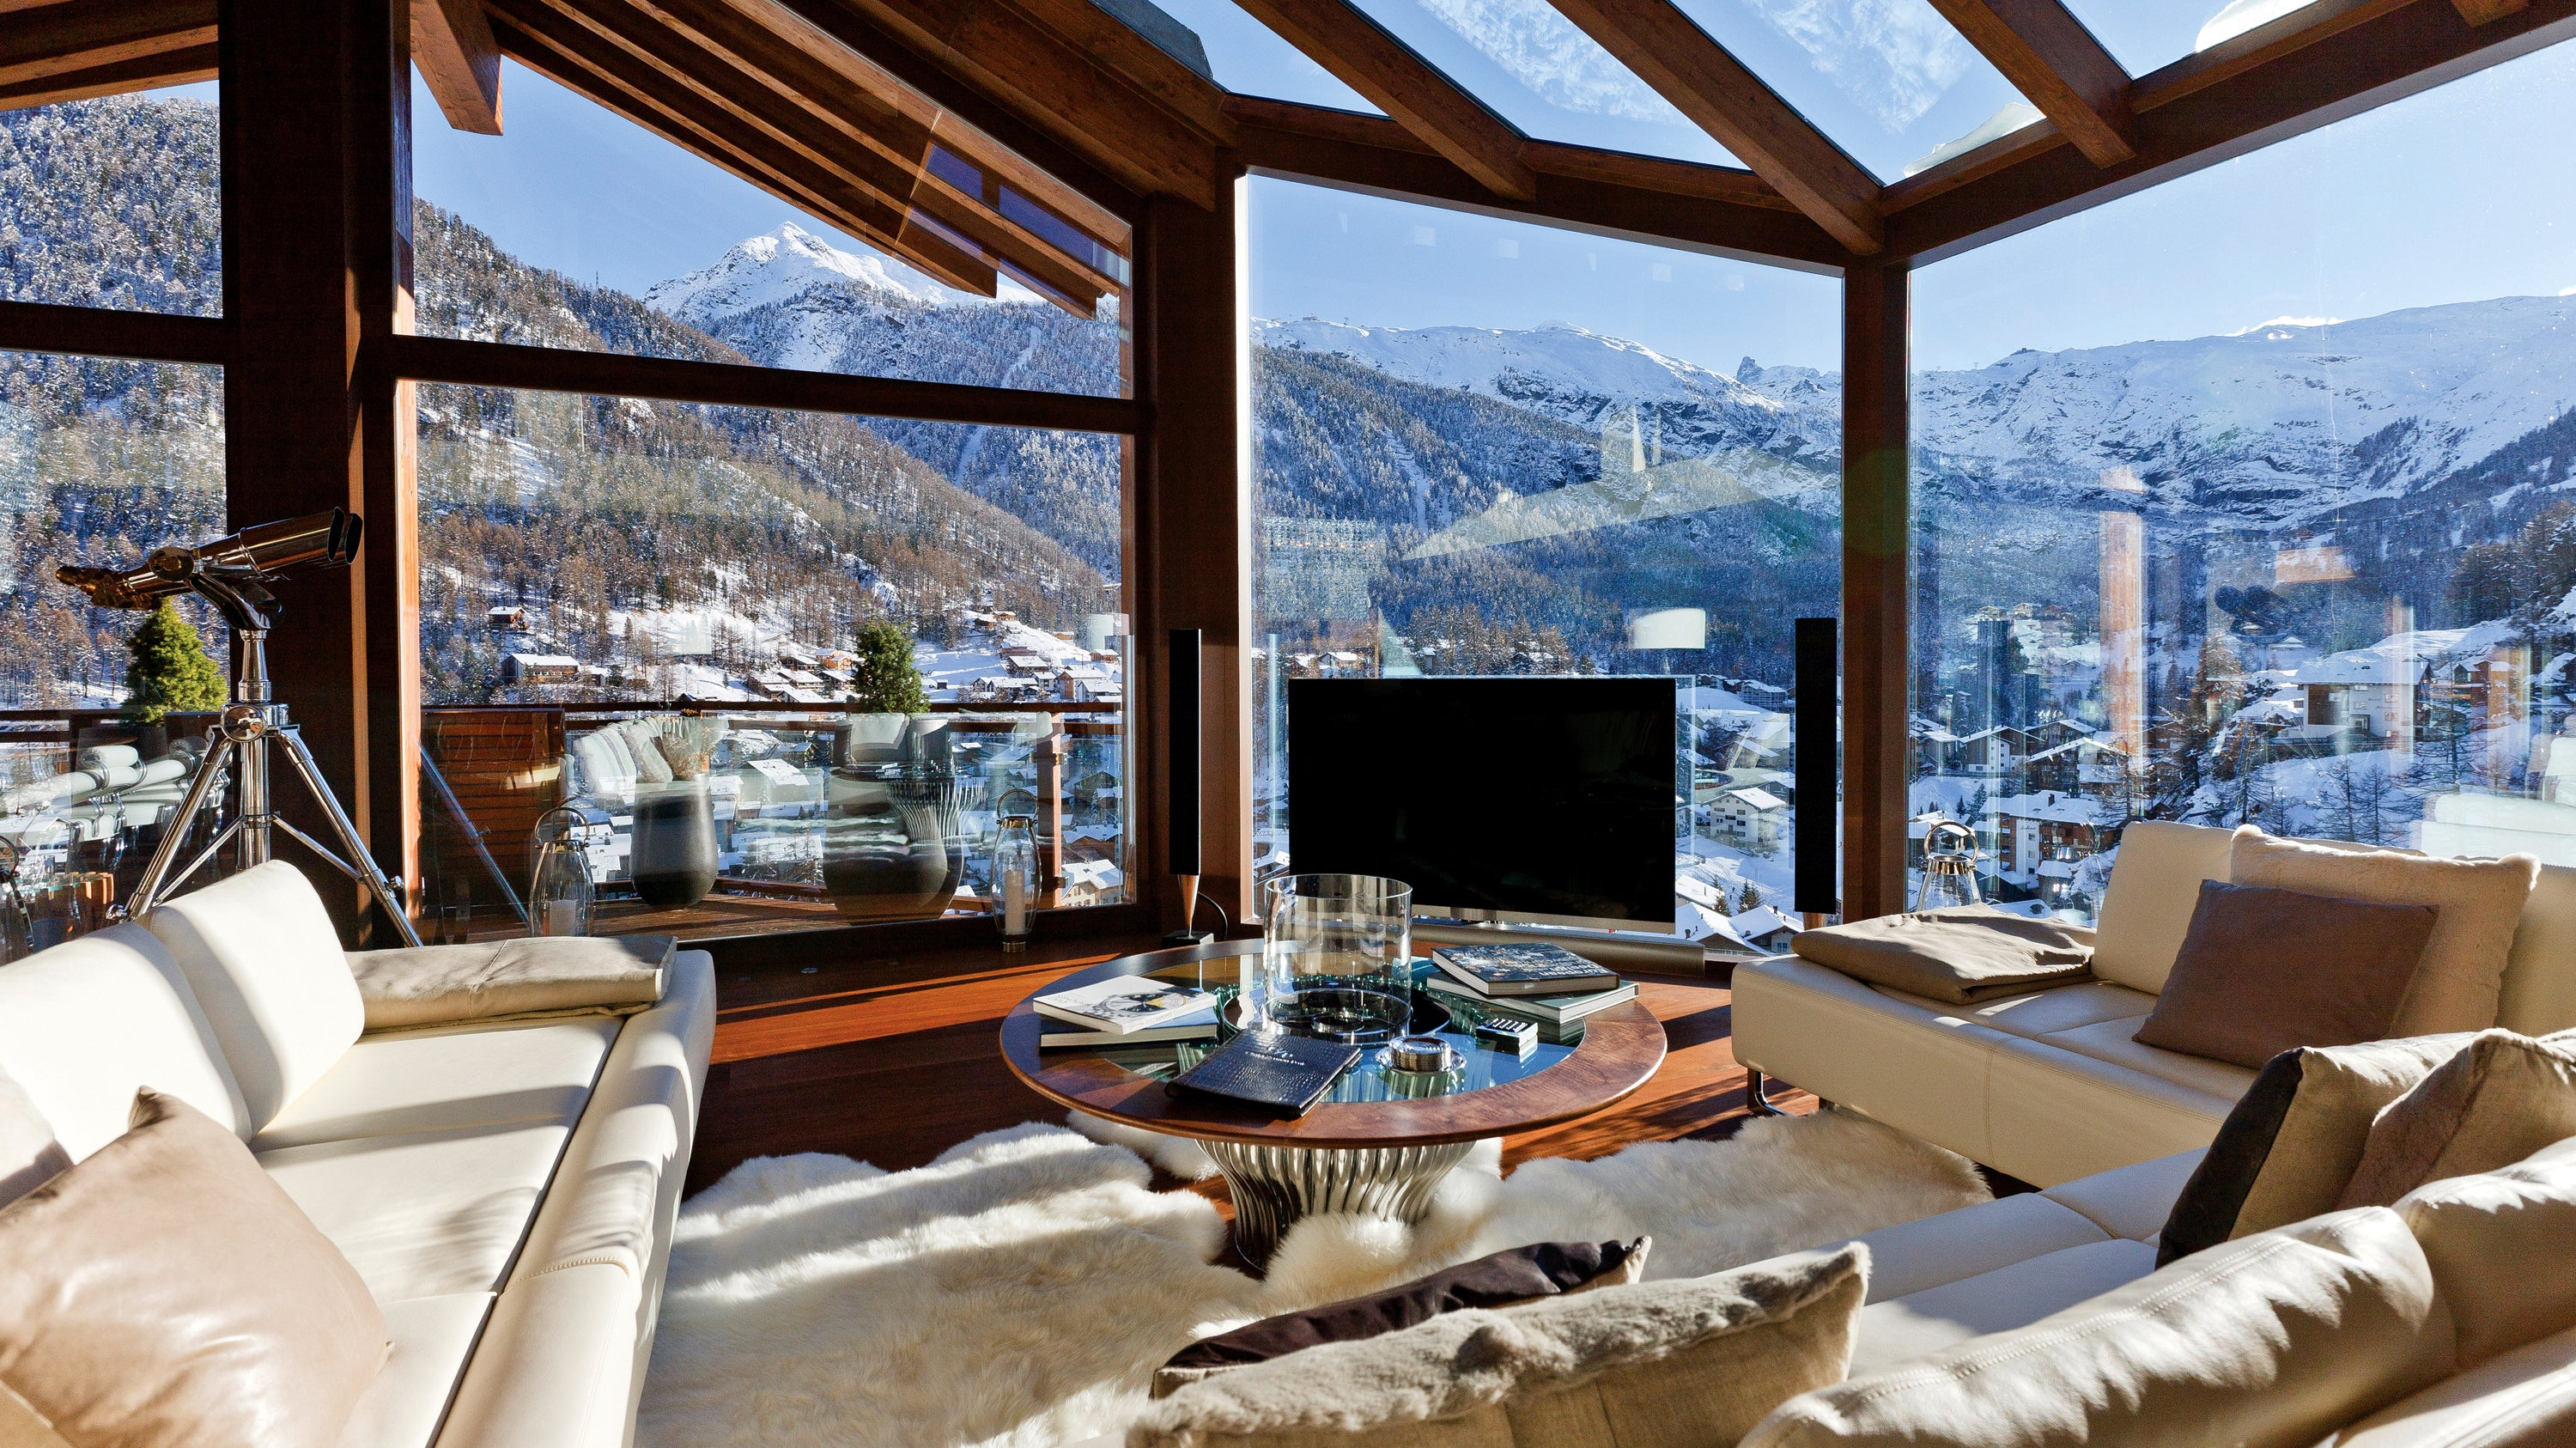 Luxurious Ski Chalets You Have To See To Believe (PHOTOS)